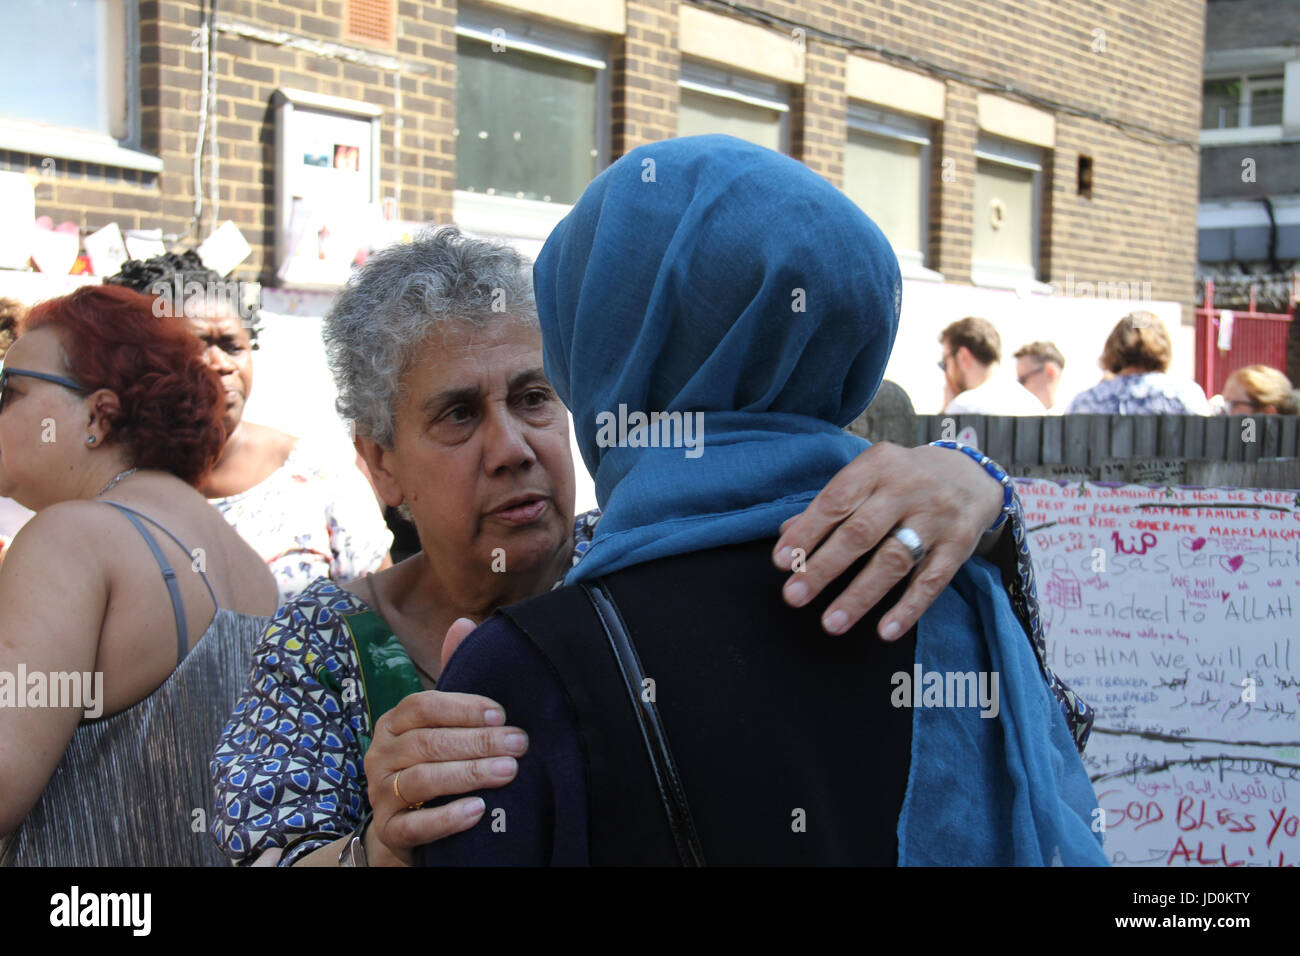 London, UK. 16th June 2017. A Muslim woman is welcomed to sing along by a Grenfell Tower memorial on 17 June. At - Stock Image